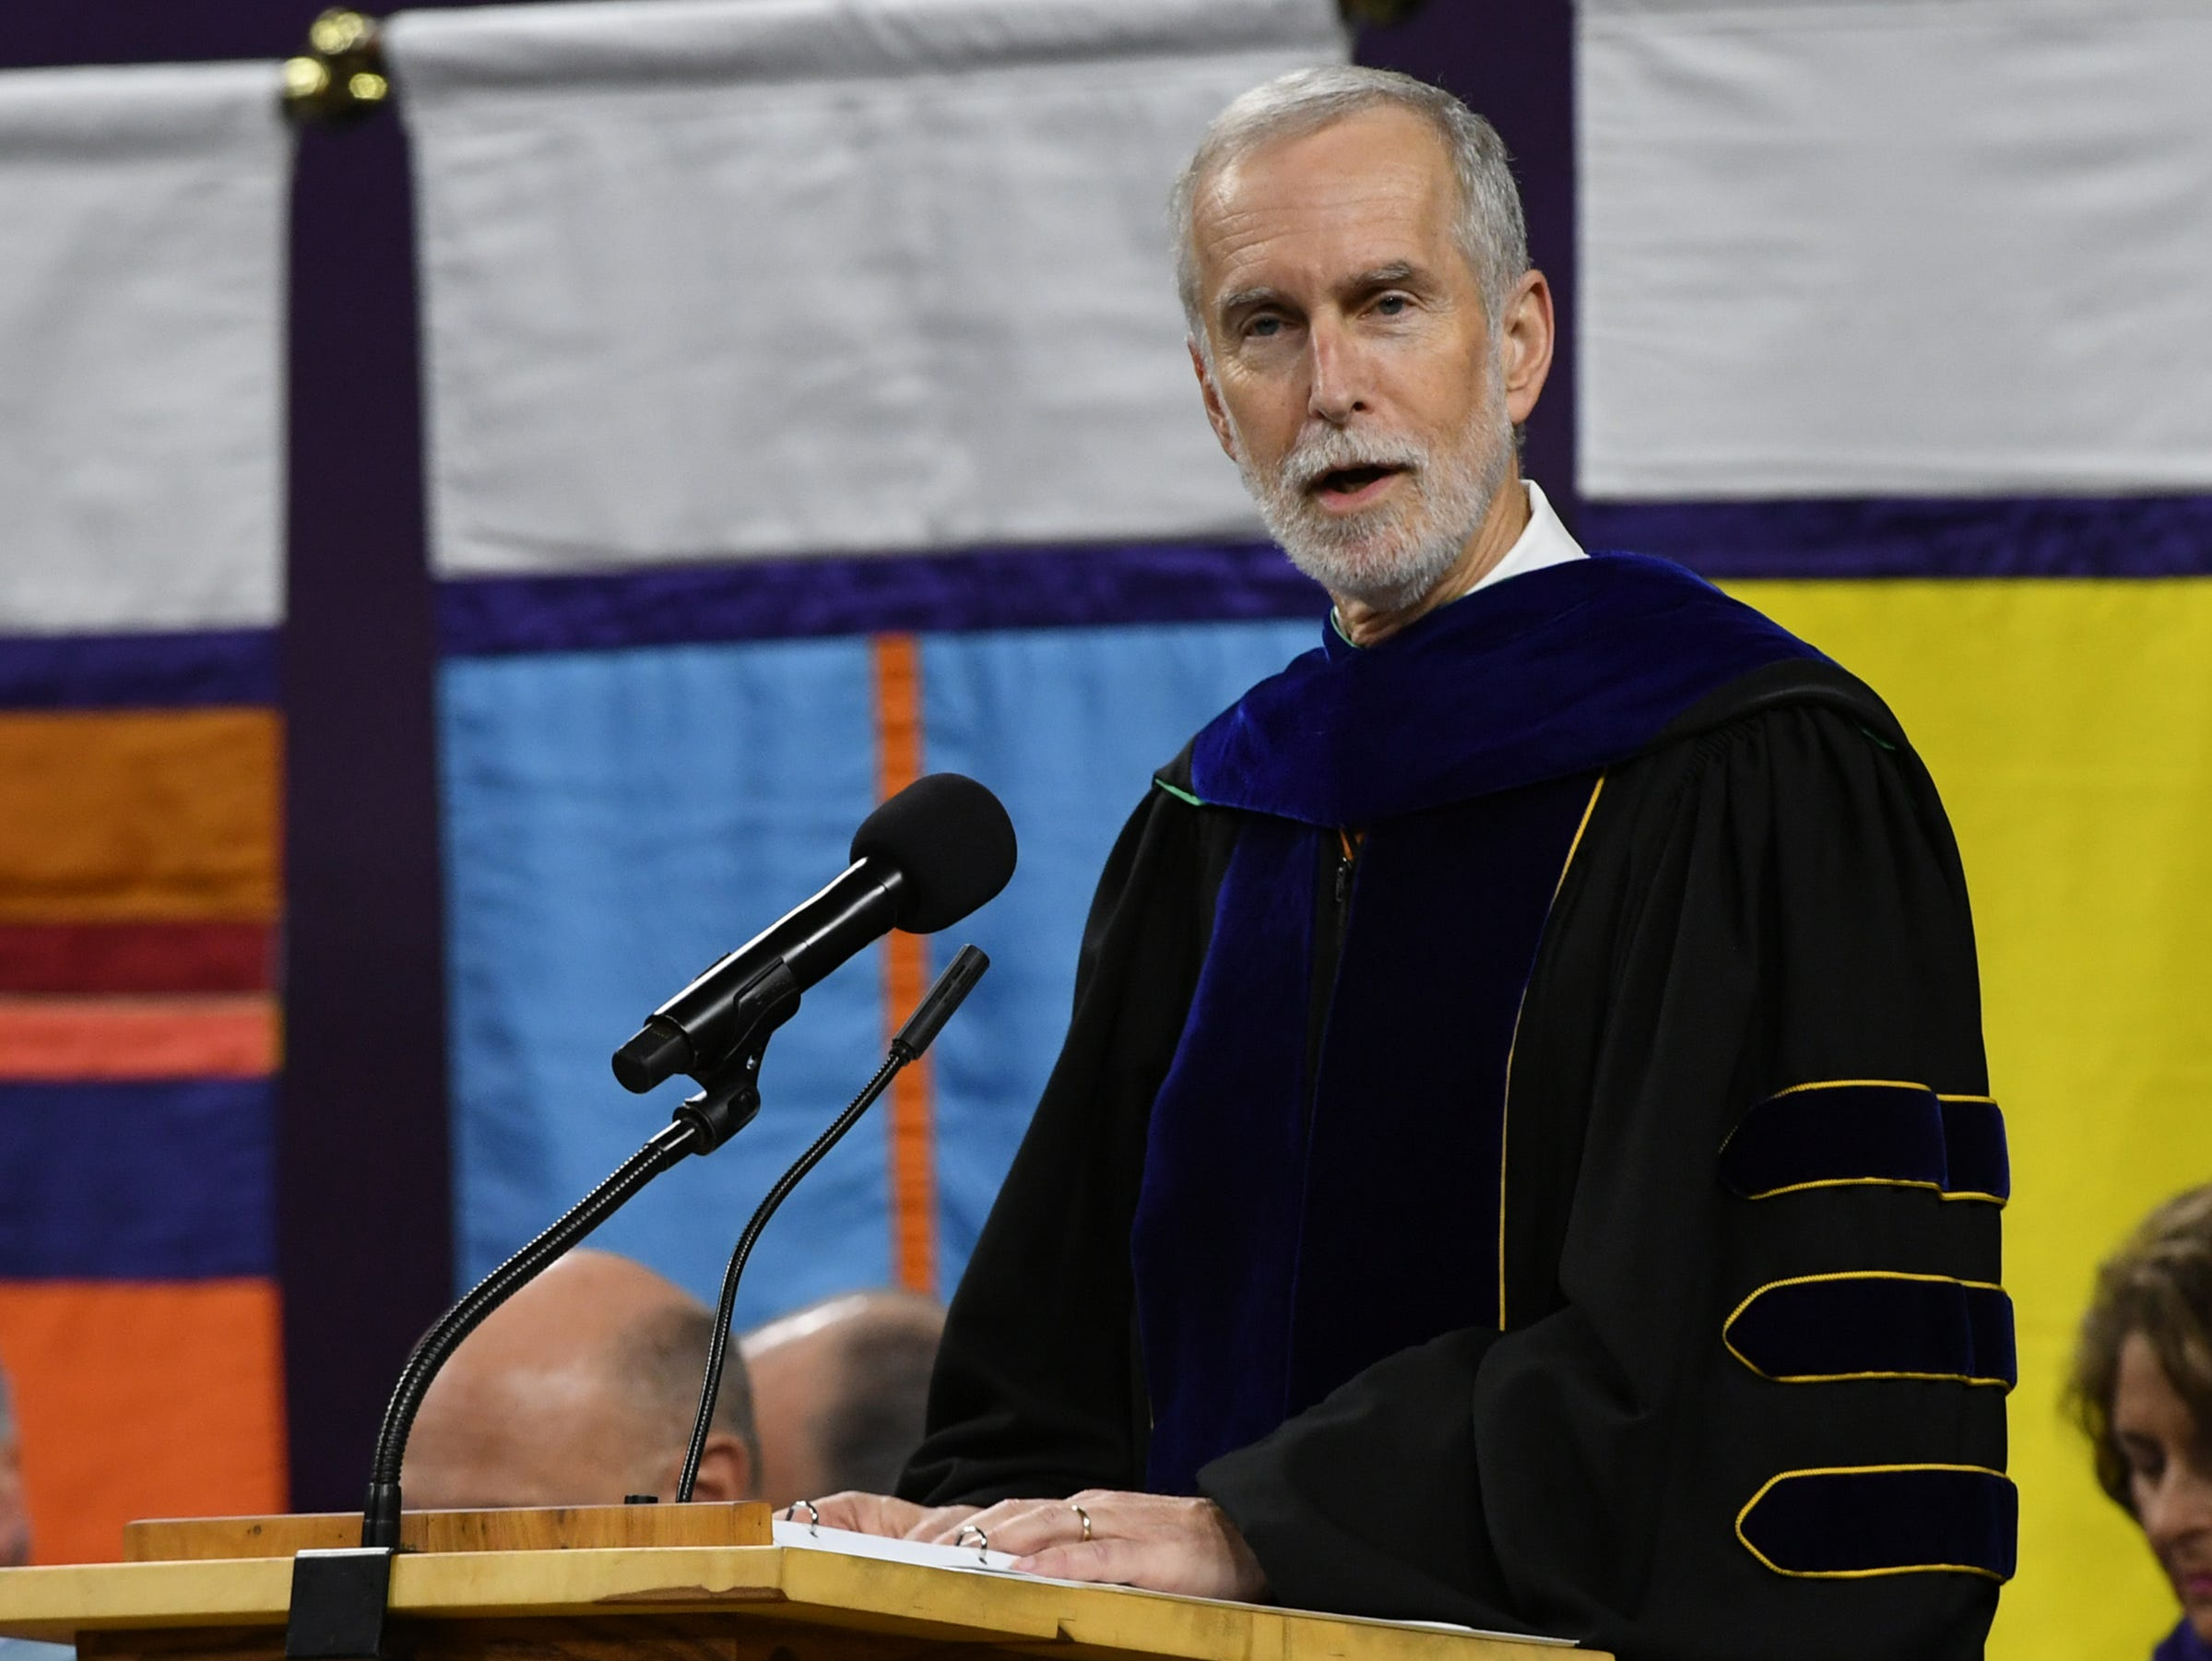 Bob Jones, Executive Vice President for Academic Affairs, recognizes the deans of colleges during Clemson University commencement ceremonies in Littlejohn Coliseum in Clemson Friday, May 10, 2019.